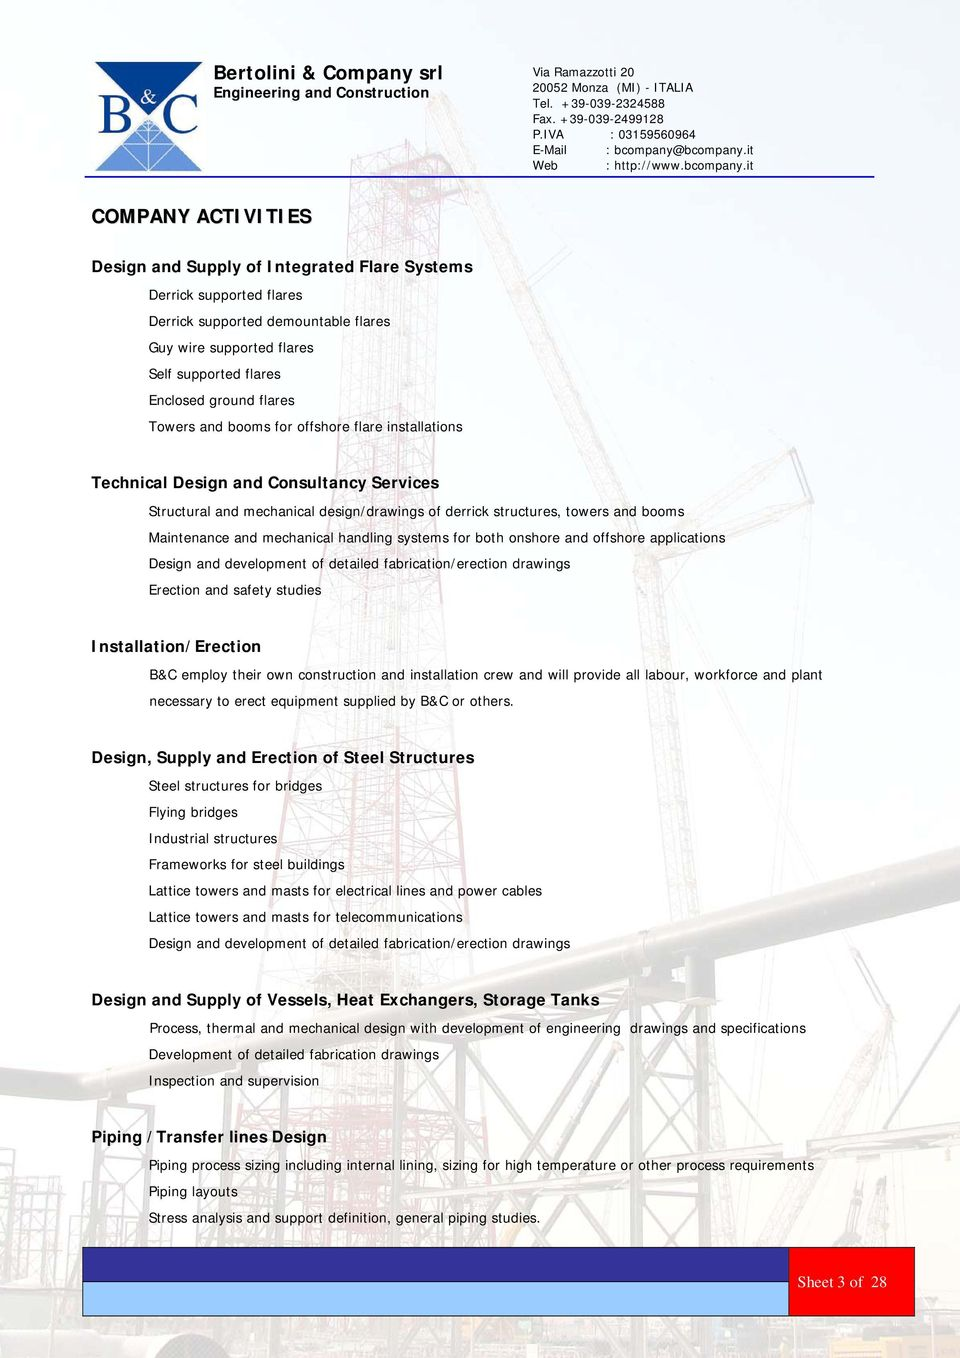 Bertolini Company Srl Engineering And Construction Pdf Piping Layout Consultants Mechanical Handling Systems For Both Onshore Offshore Applications Design Development Of Detailed Fabrication